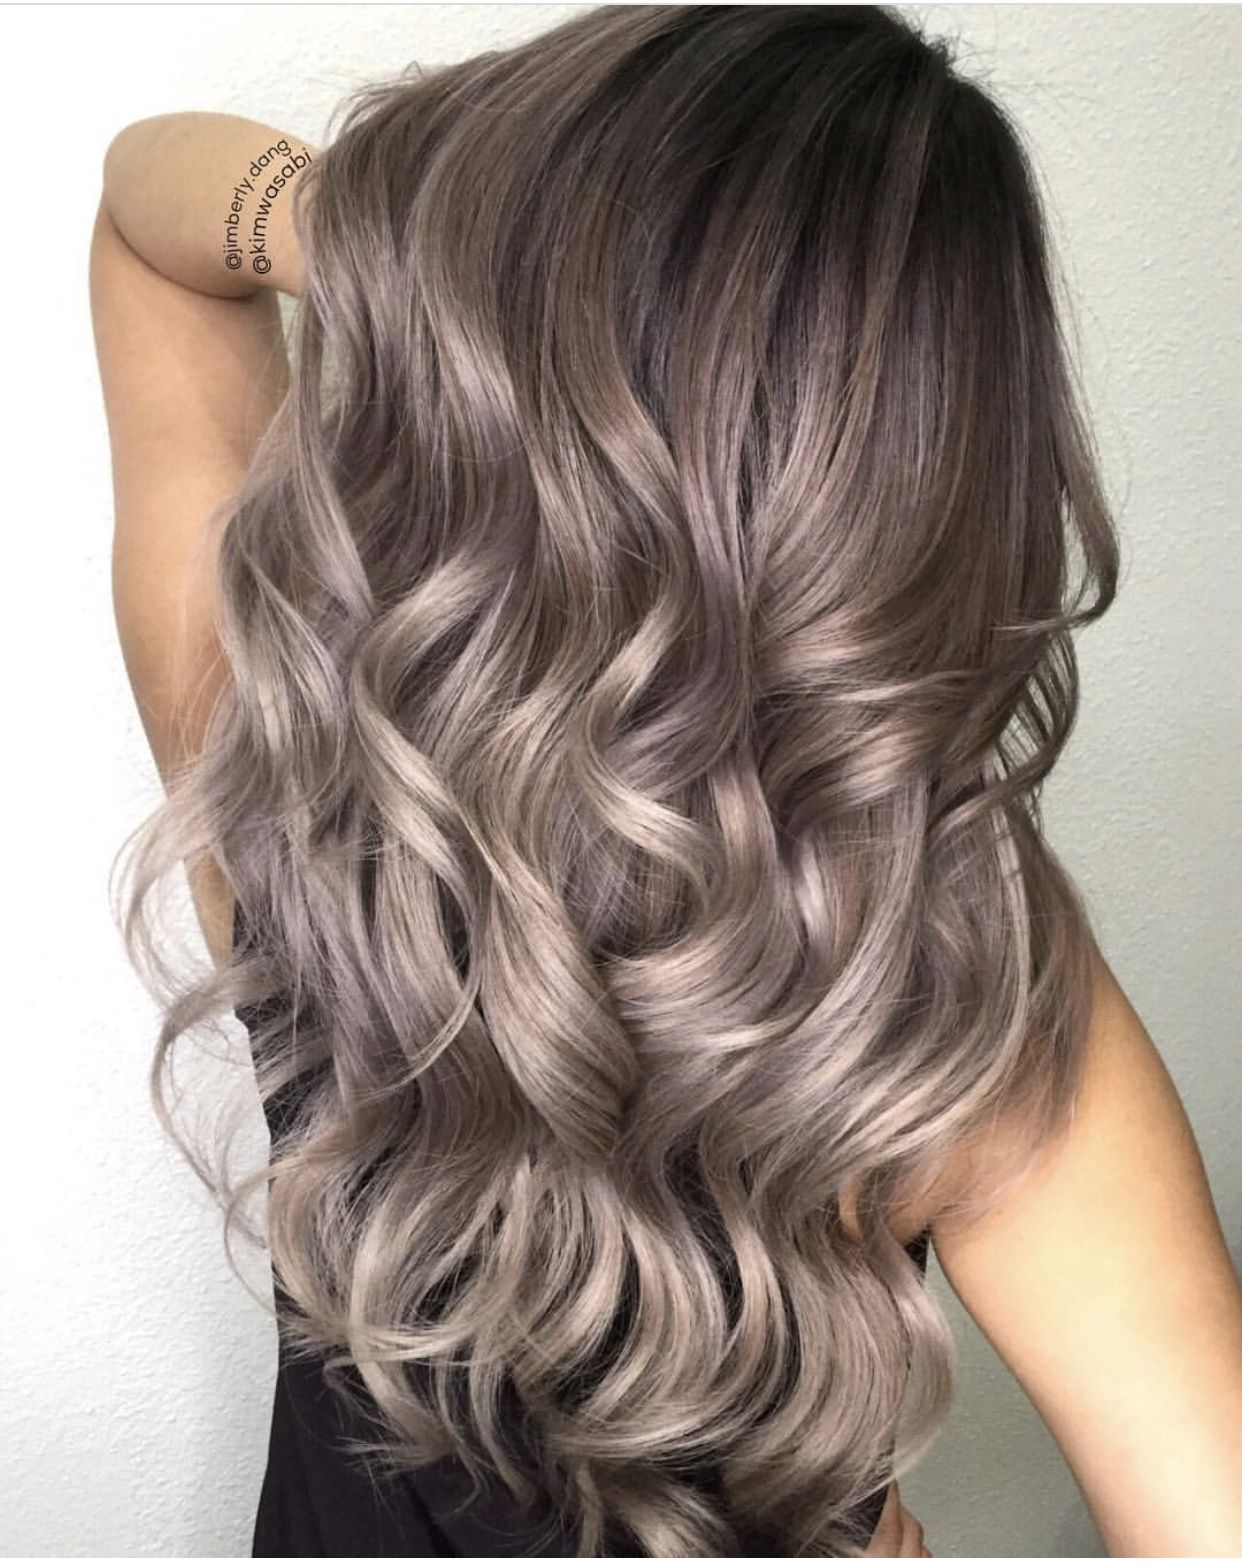 Pin by jordan g on hair pinterest hair coloring hair style and